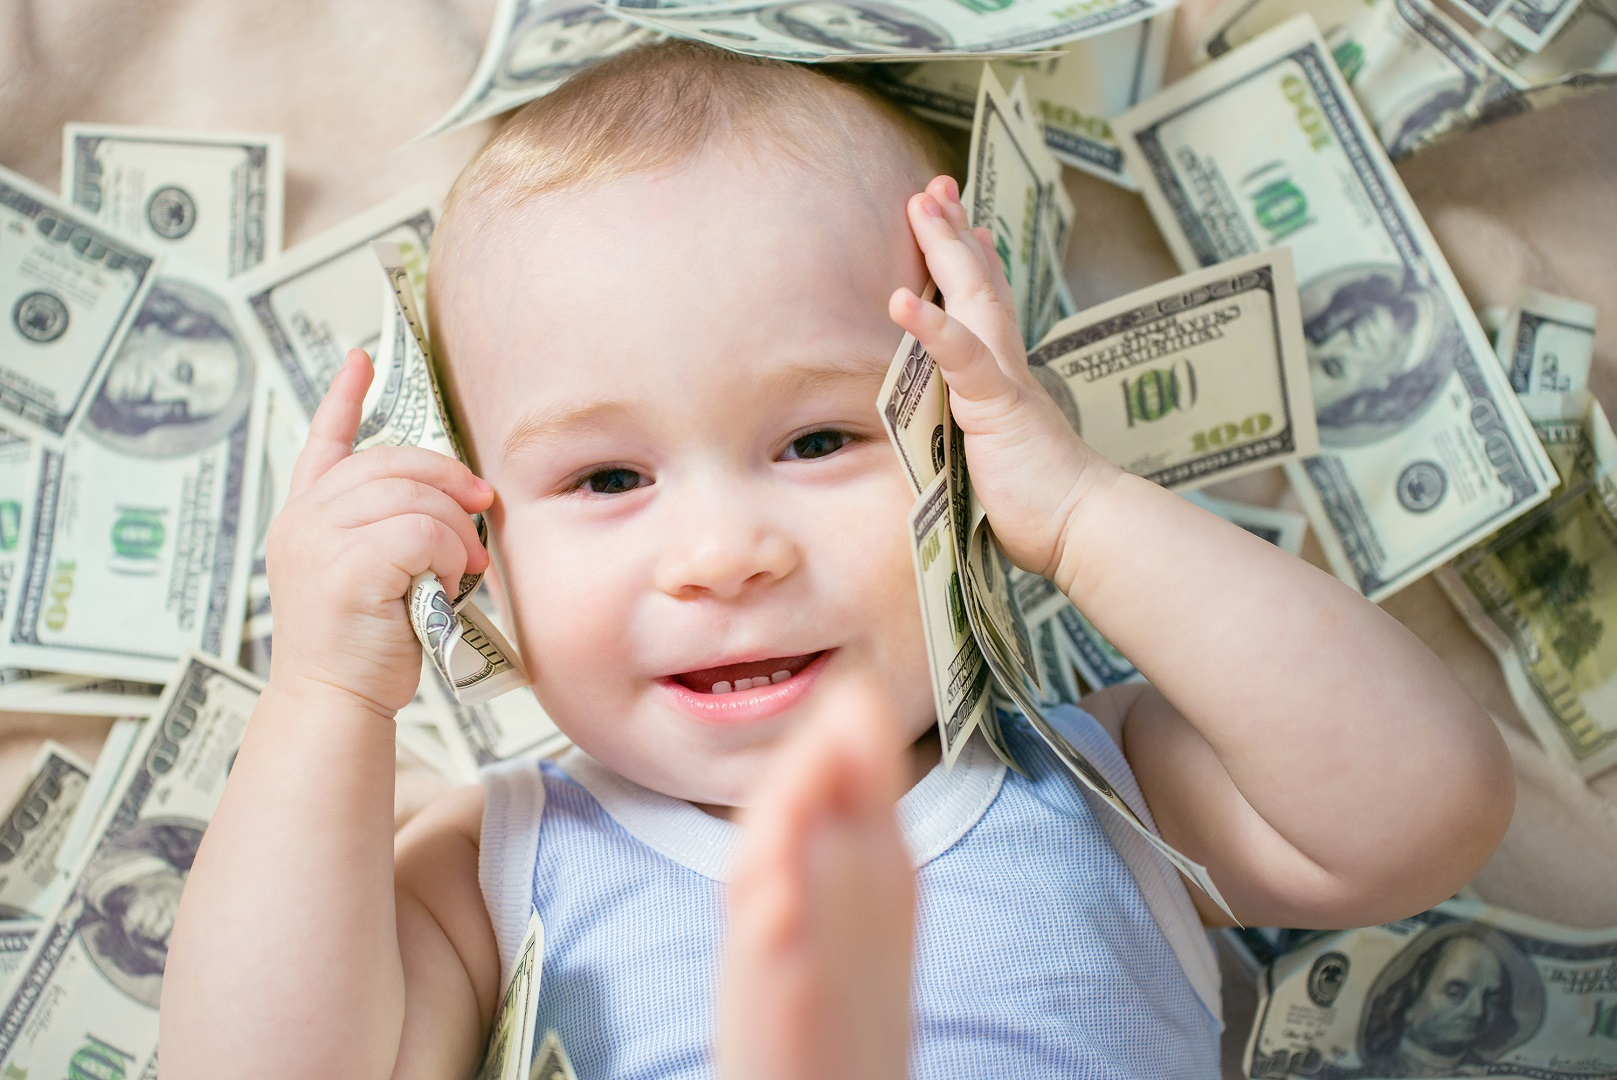 Baby Laying In Pile Of Money Holding Bills To Ears